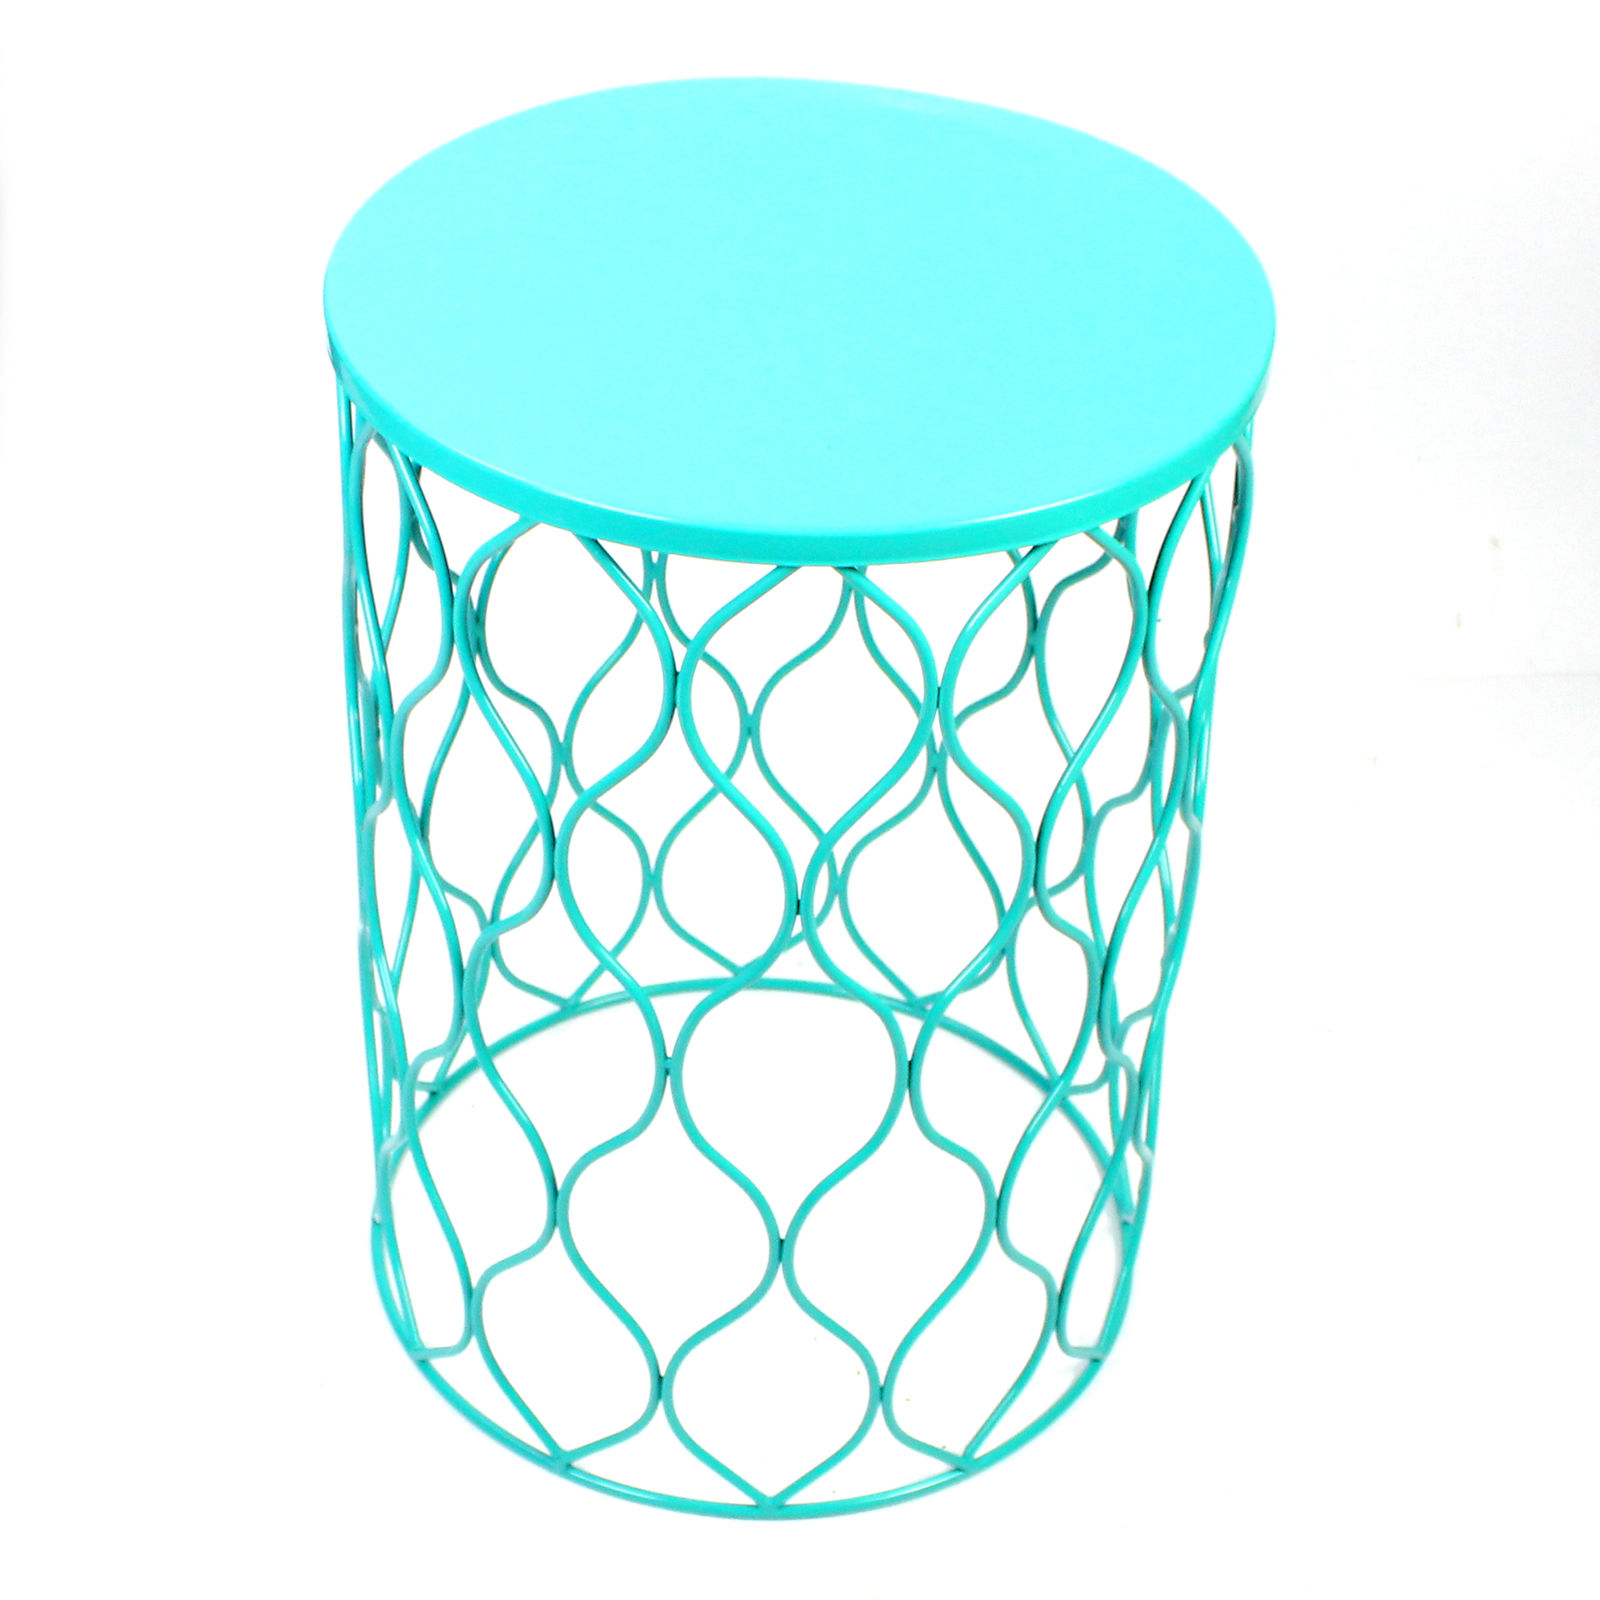 Phenomenal Side Table For Indoor Outdoor Use Set Of 3 Black Ym Round Evergreenethics Interior Chair Design Evergreenethicsorg